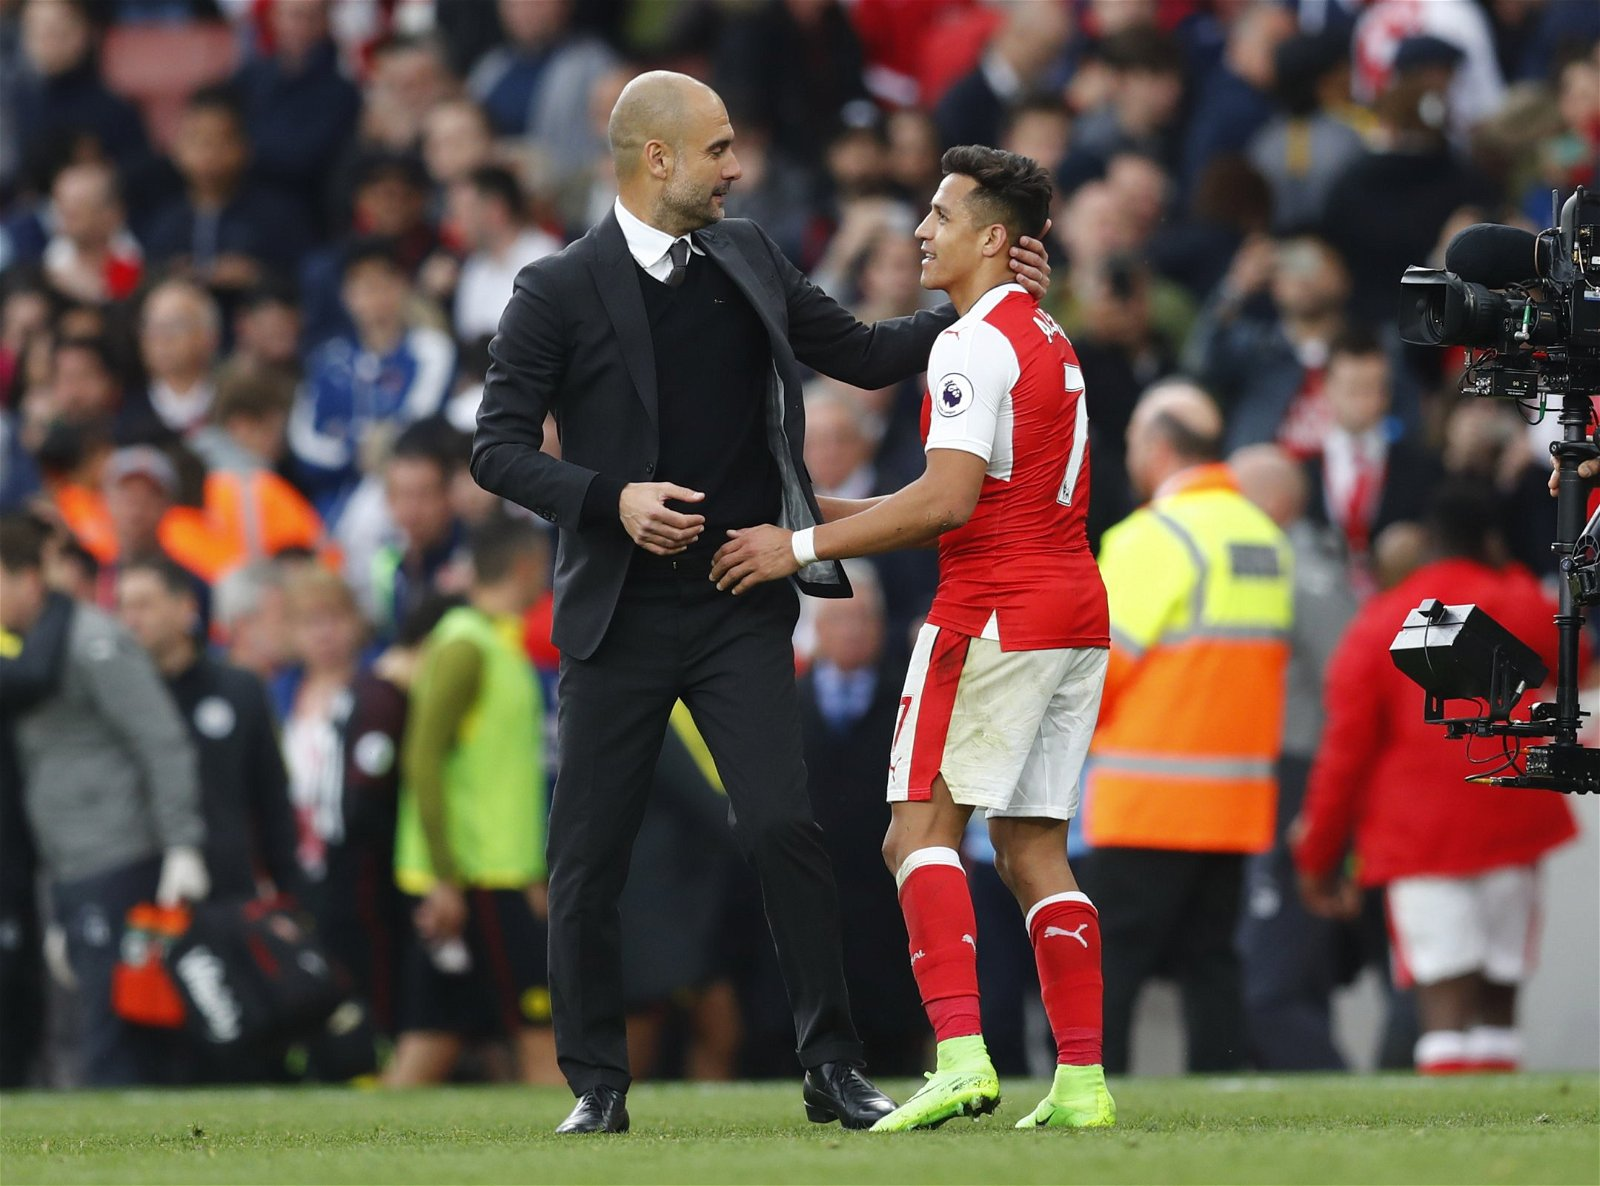 We must all stop clicking to ensure the Sanchez saga never happens again